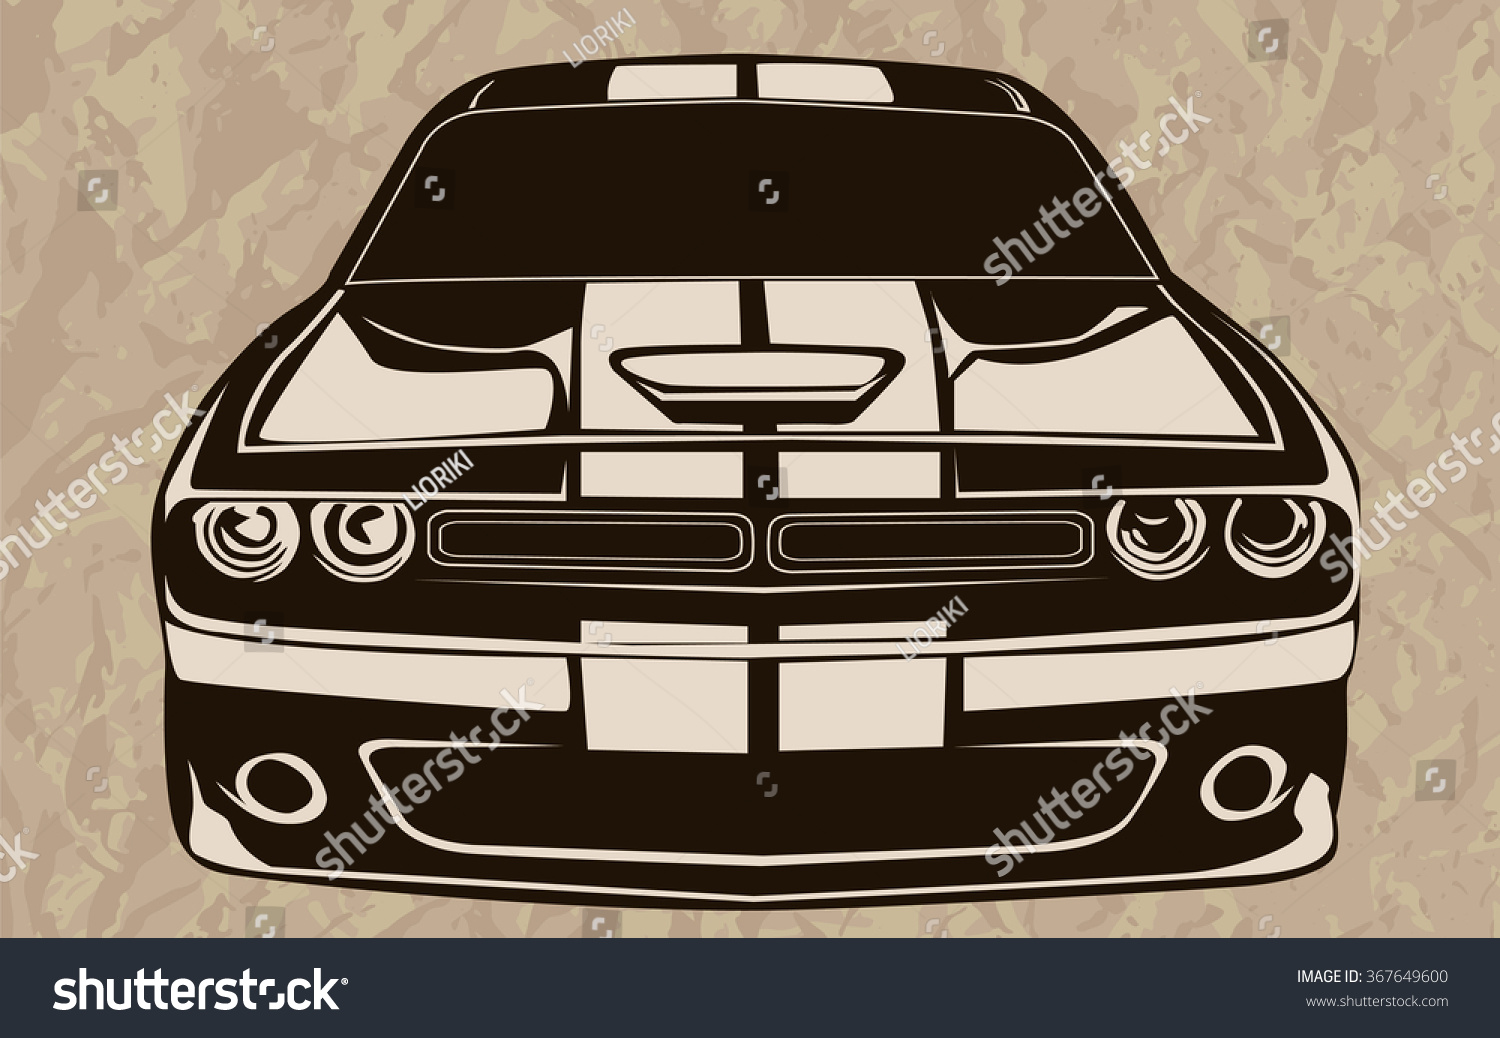 Old School Muscle Cars Inspired Cartoon Stock Vector 367649600 ...